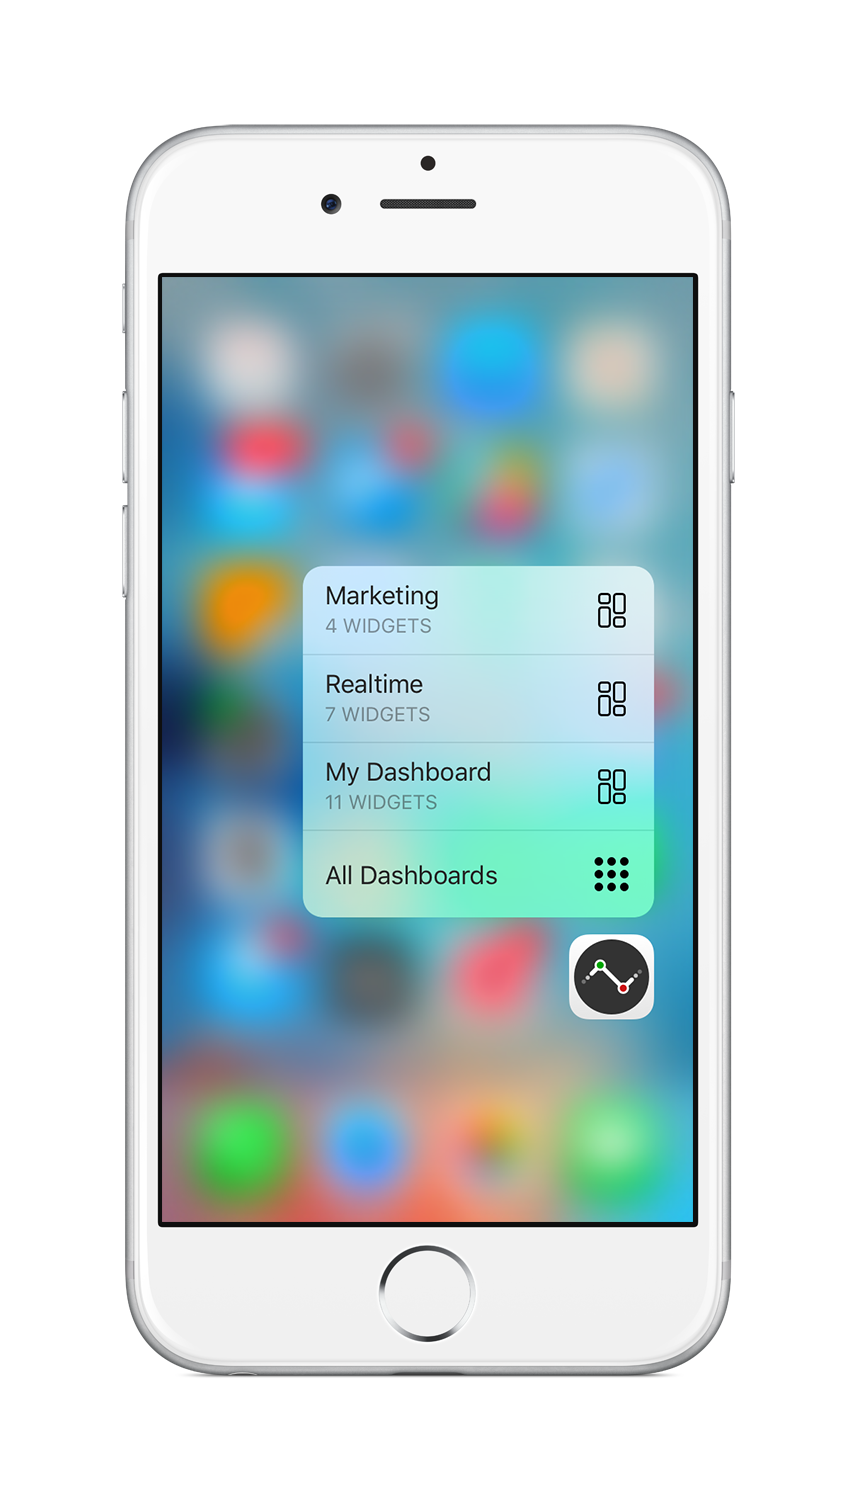 3D Touch support with quick actions